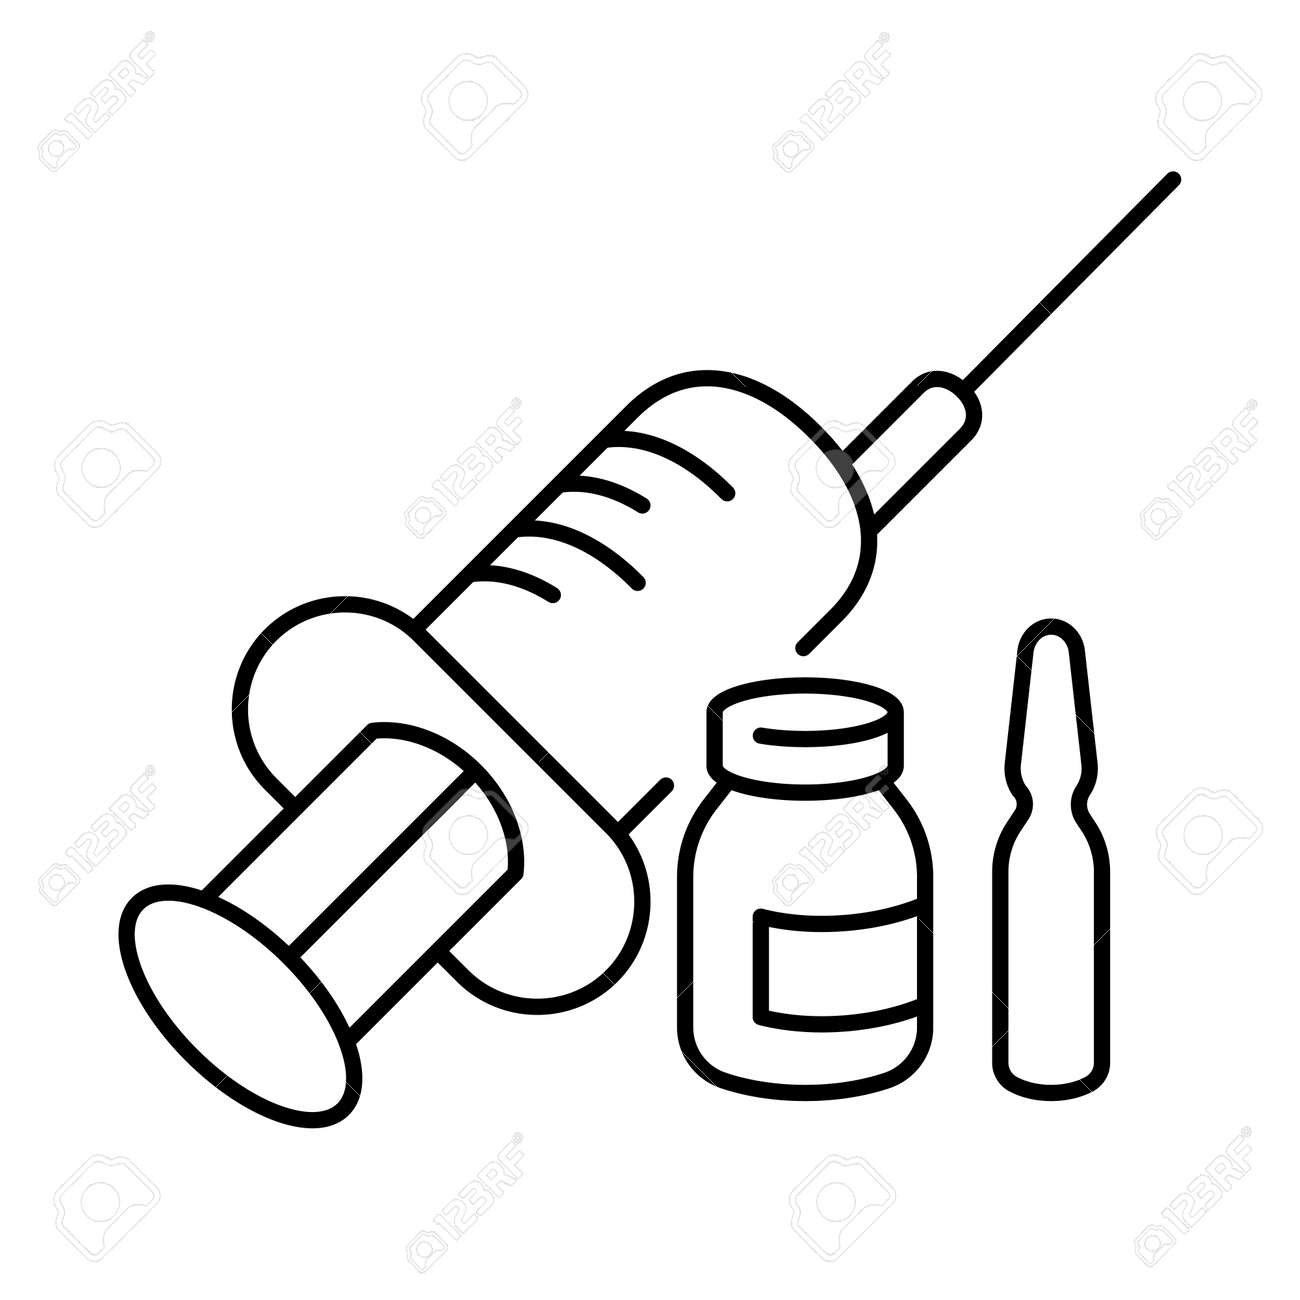 Simple linear icon of a vaccine or medicine with a syringe - 155691954